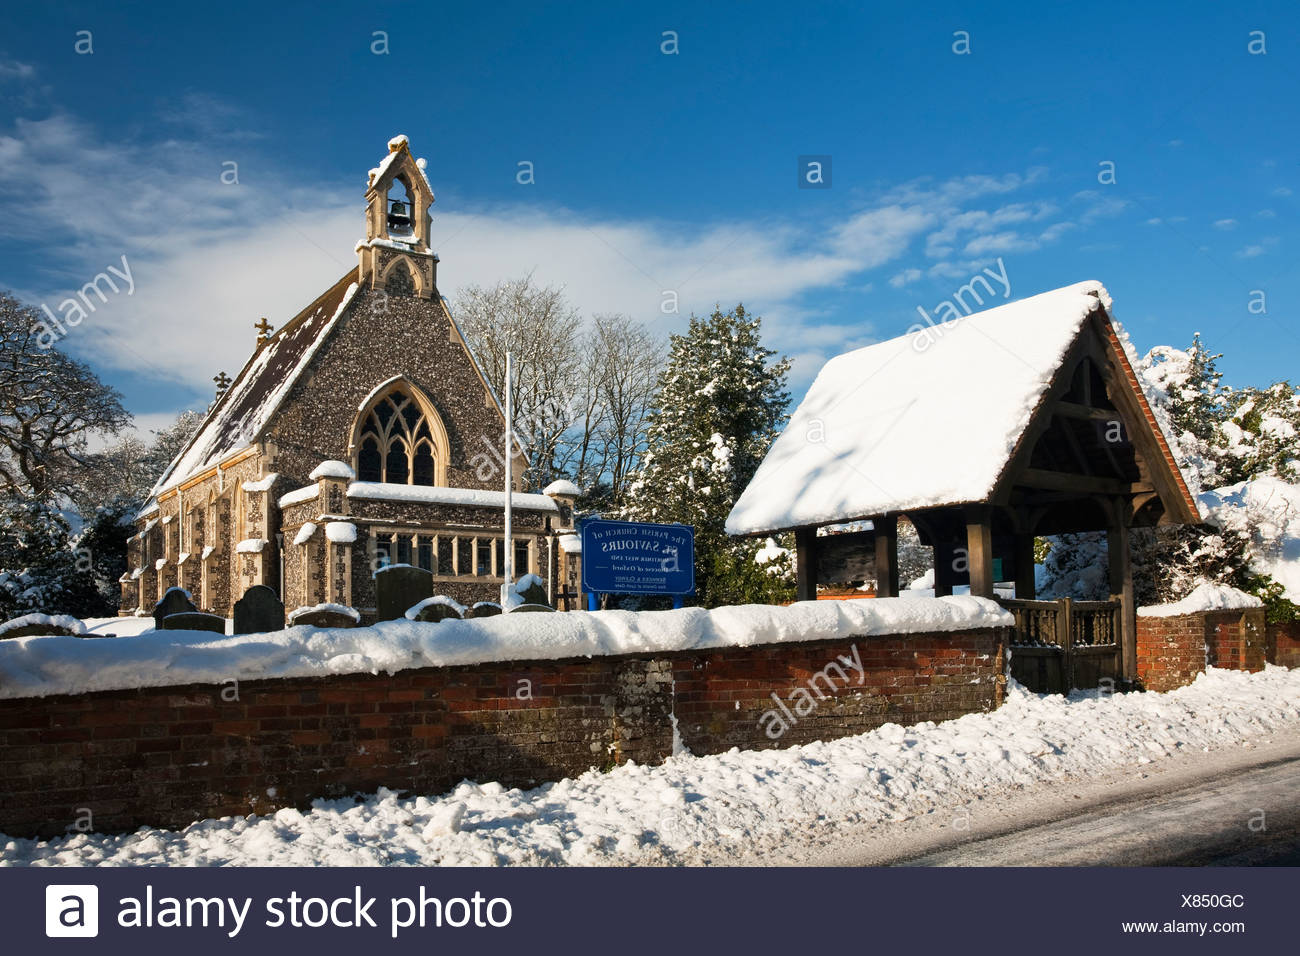 St Saviours Church in the snow, Mortimer West End, Reading, Berkshire, Uk Stock Photo